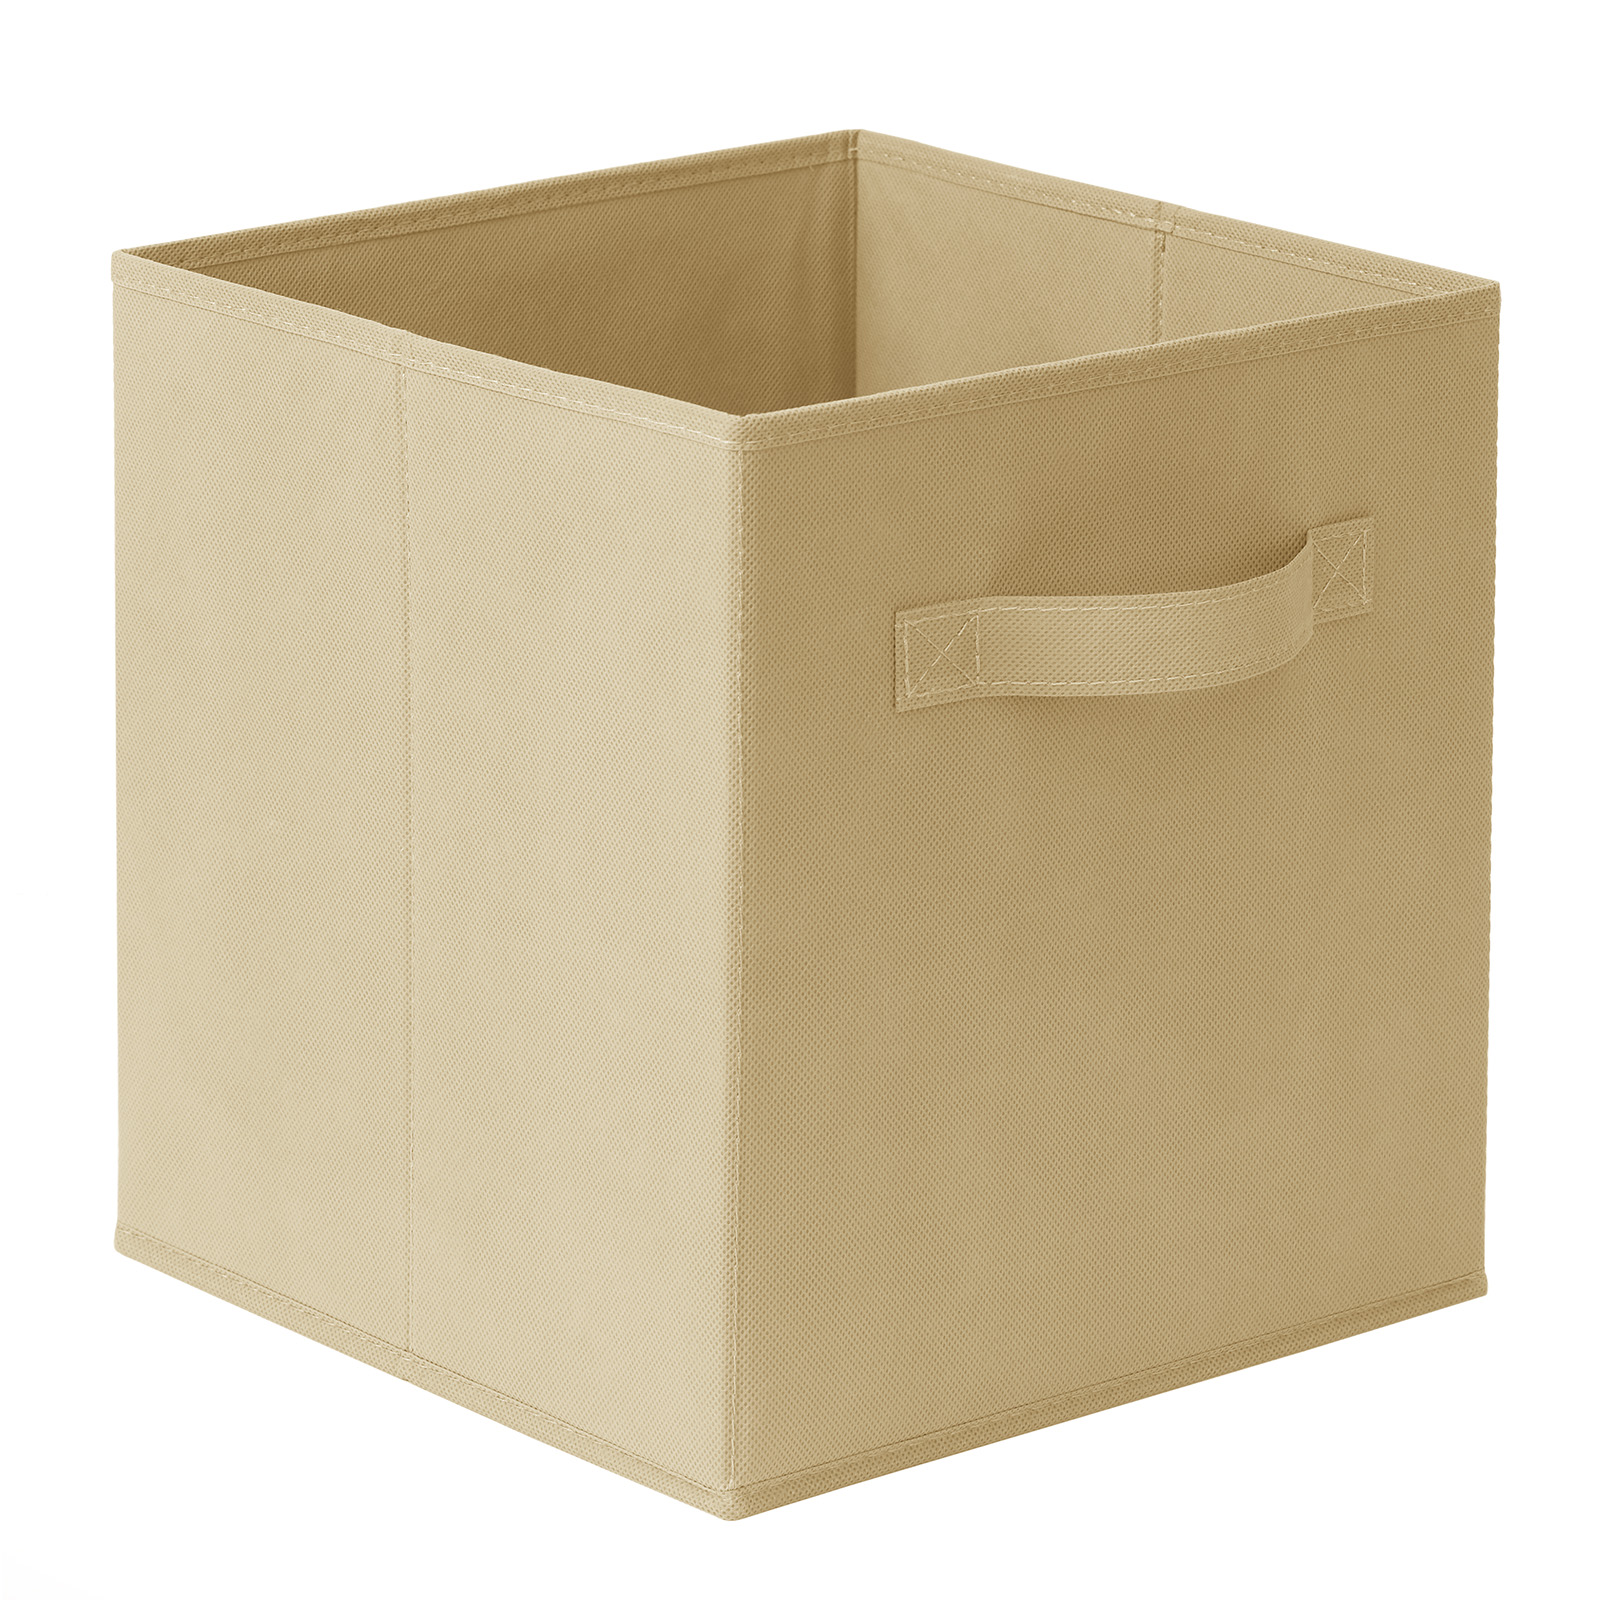 6-Collapsible-Foldable-Cloth-Fabric-Cubby-Cube-Storage-Bins-Baskets-for-Shelves thumbnail 79